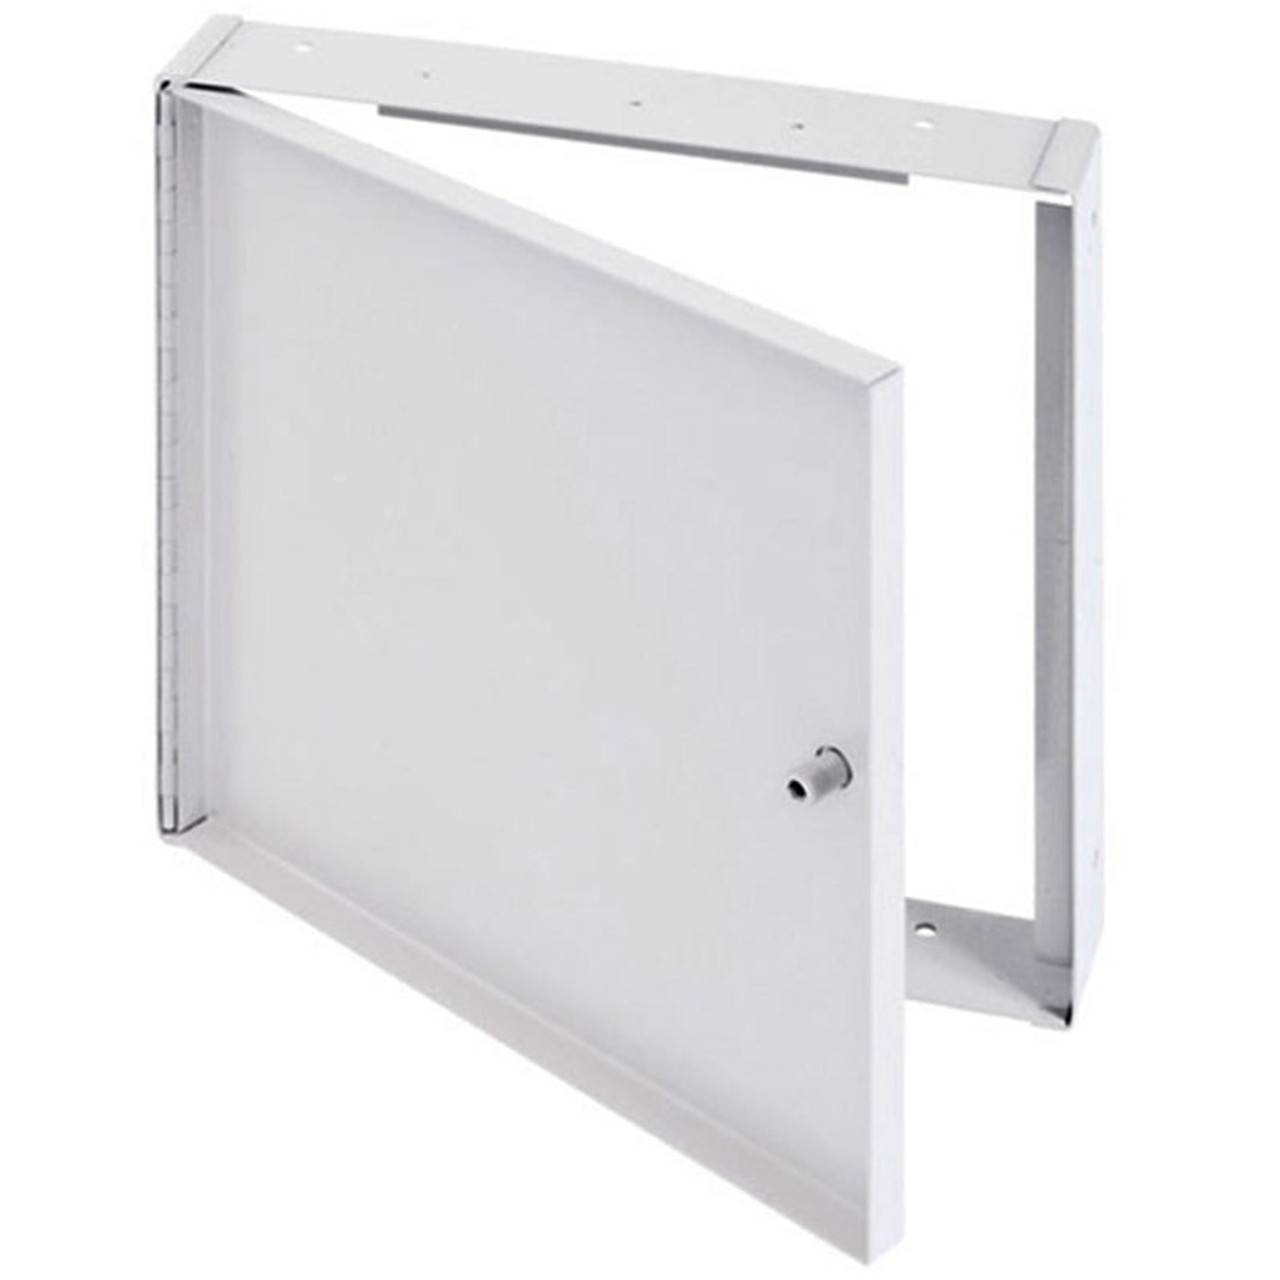 Abs Wall Ceiling Access Panel 7 Sizes White Inspection Plumbing Wiring Door Revision Hatch Cover Aliexpress